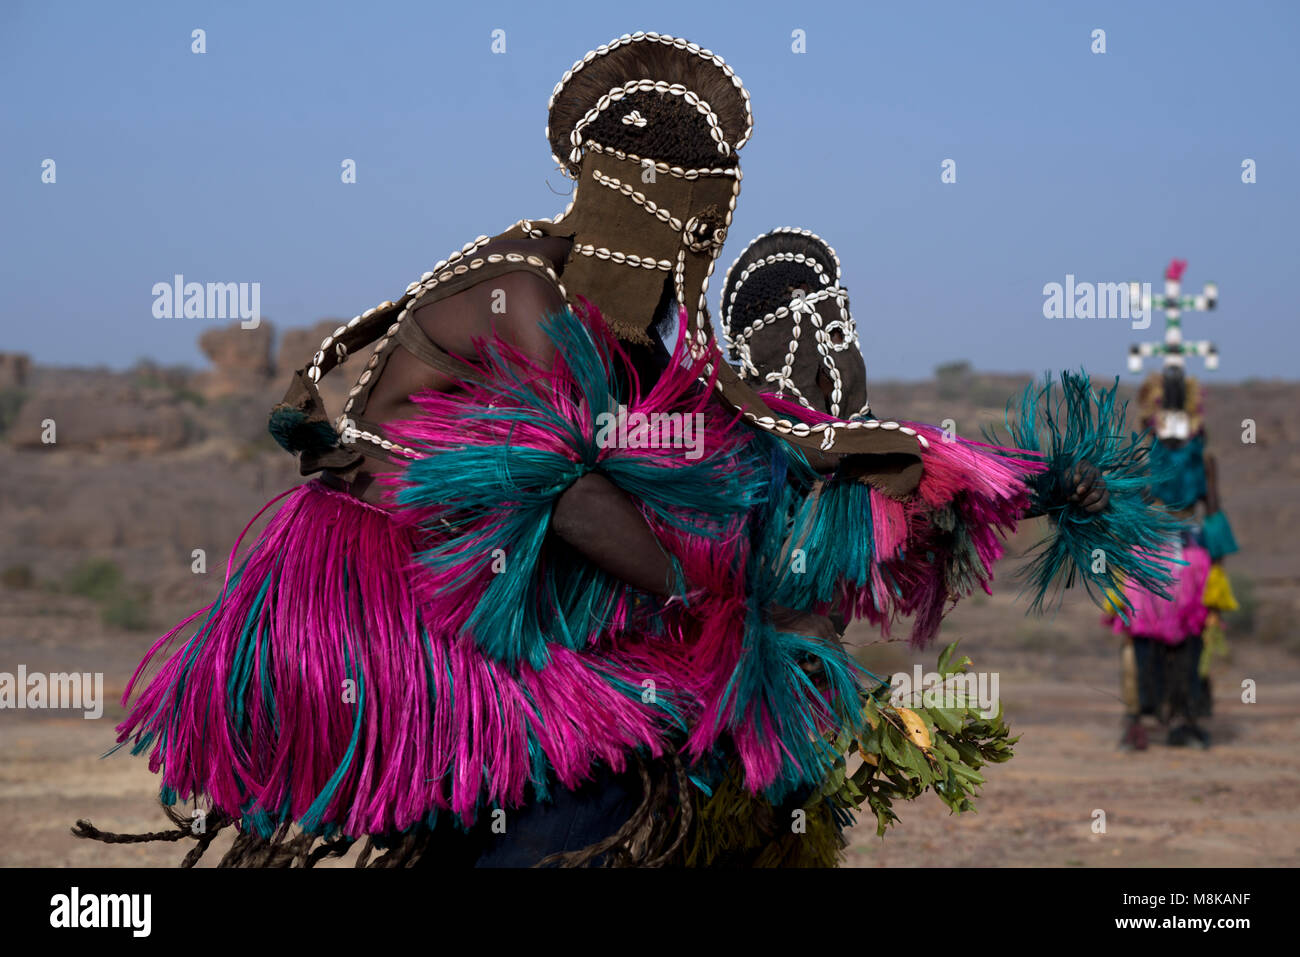 Masked Dogon dancers wave leaves while perdorming a ritualistic tribal dance. Mali, West Africa. - Stock Image